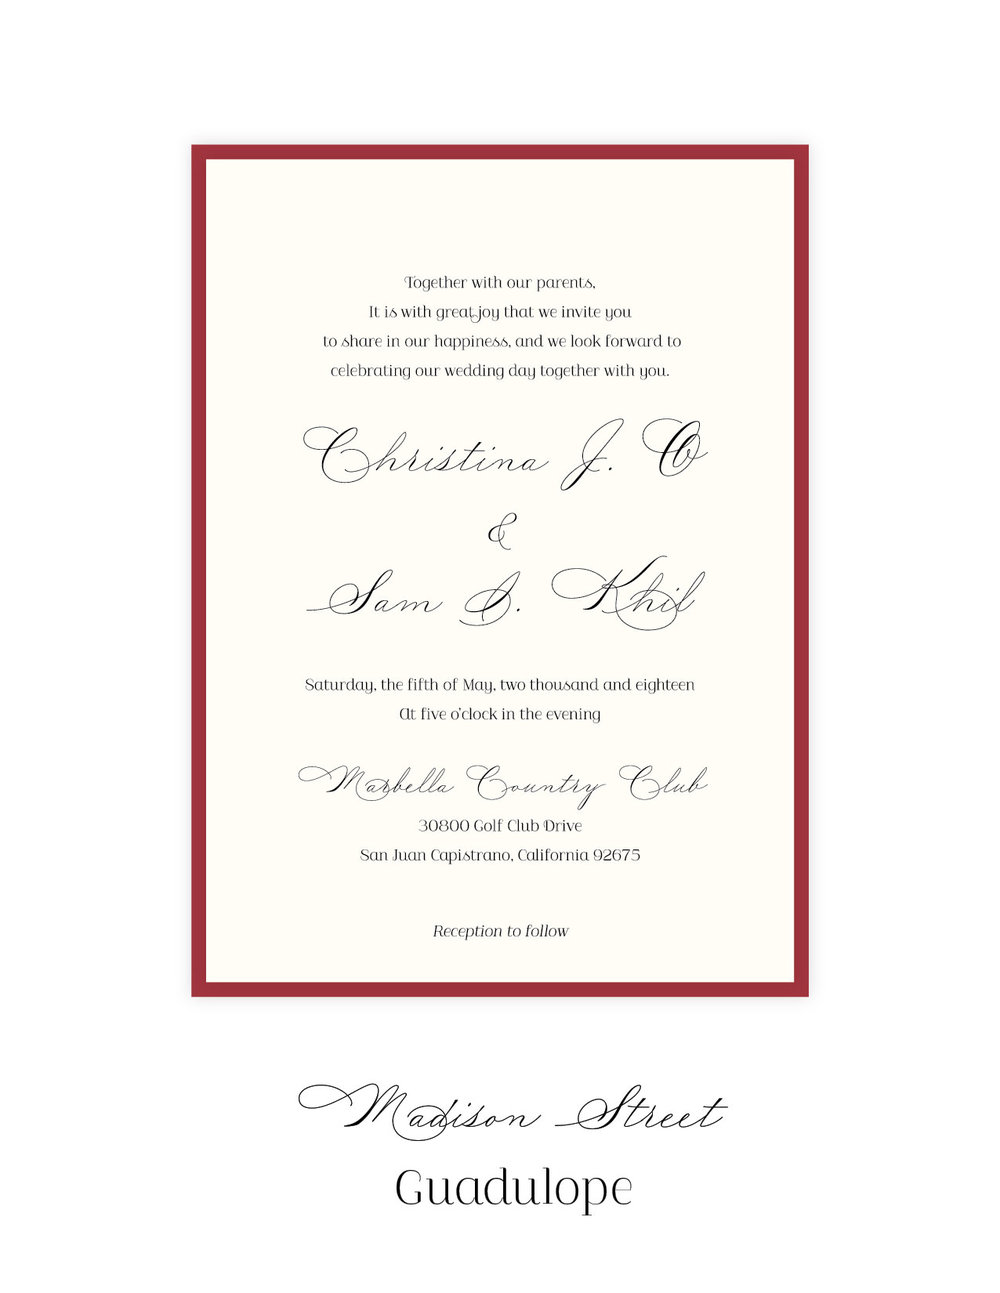 Wedding Fonts_Madison Street.jpg